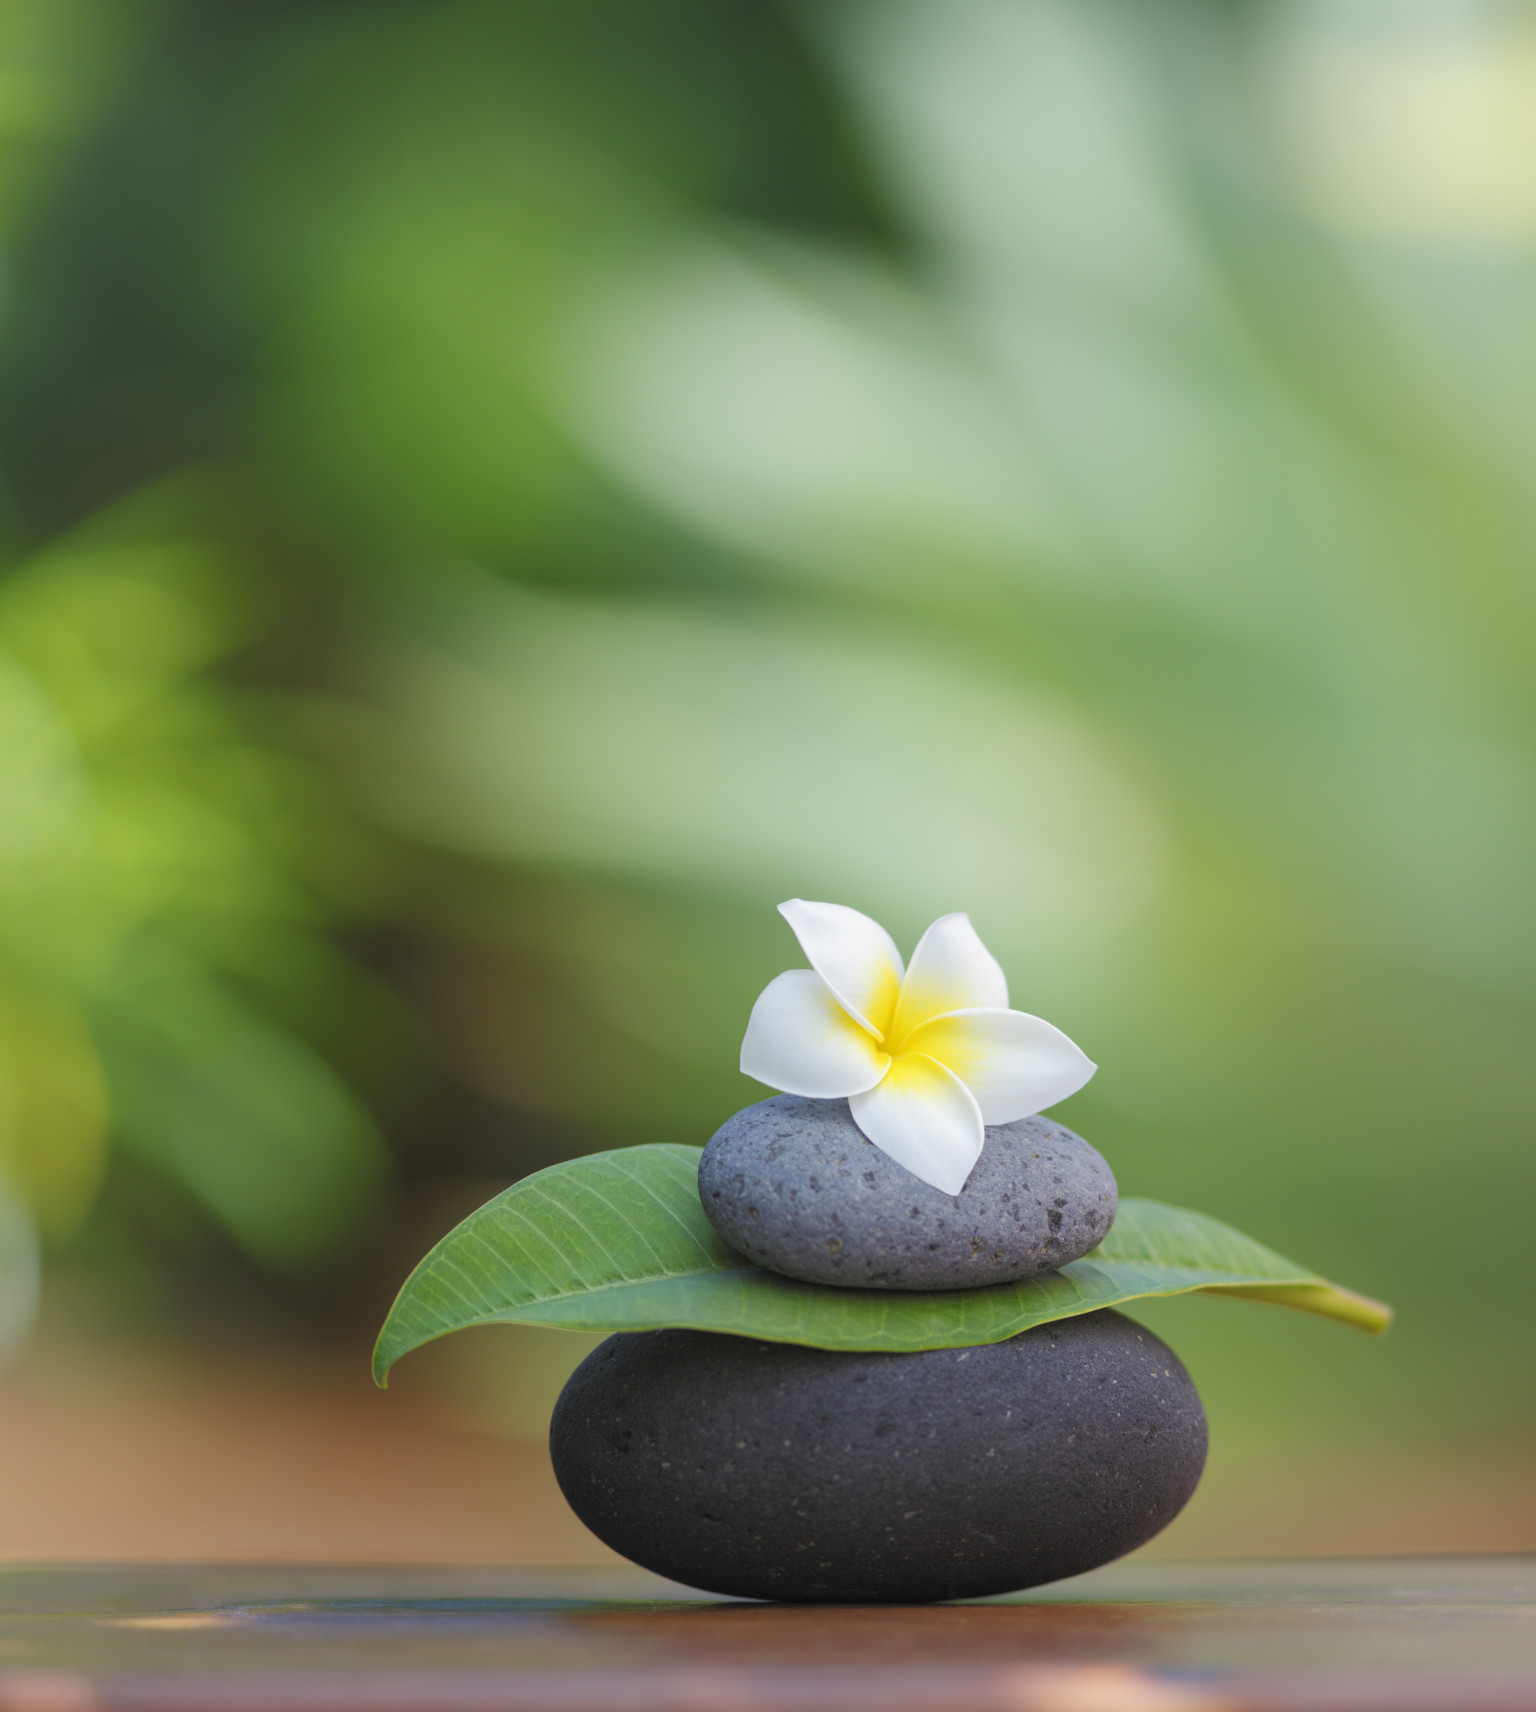 3 Ways Meditation Helps You Deal With Adversity